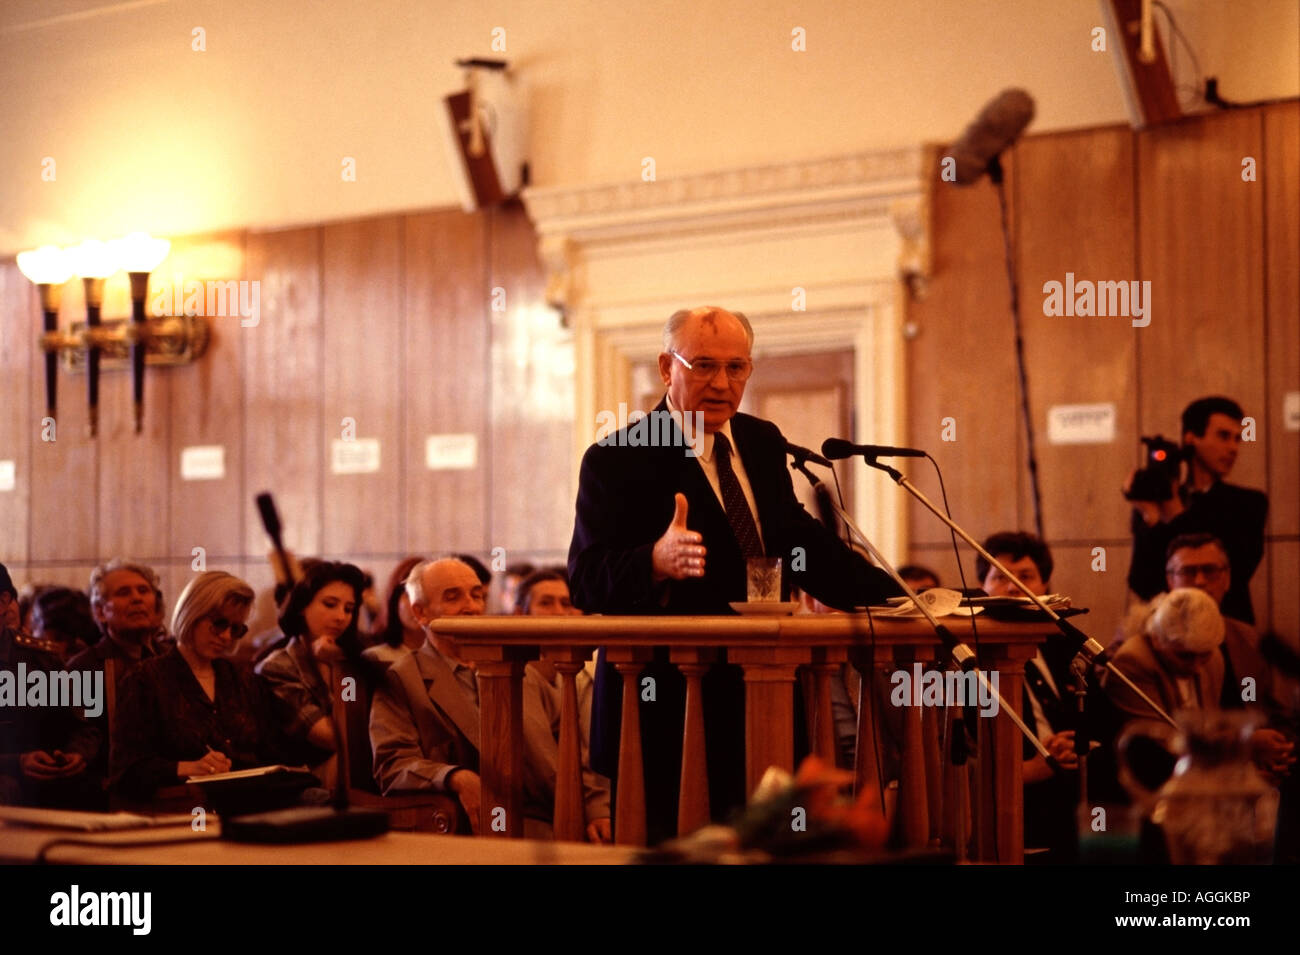 Former President of the Soviet Union Mikhail Gorbachev  testifies in Moscow during trial of the leaders of the 1991 - Stock Image